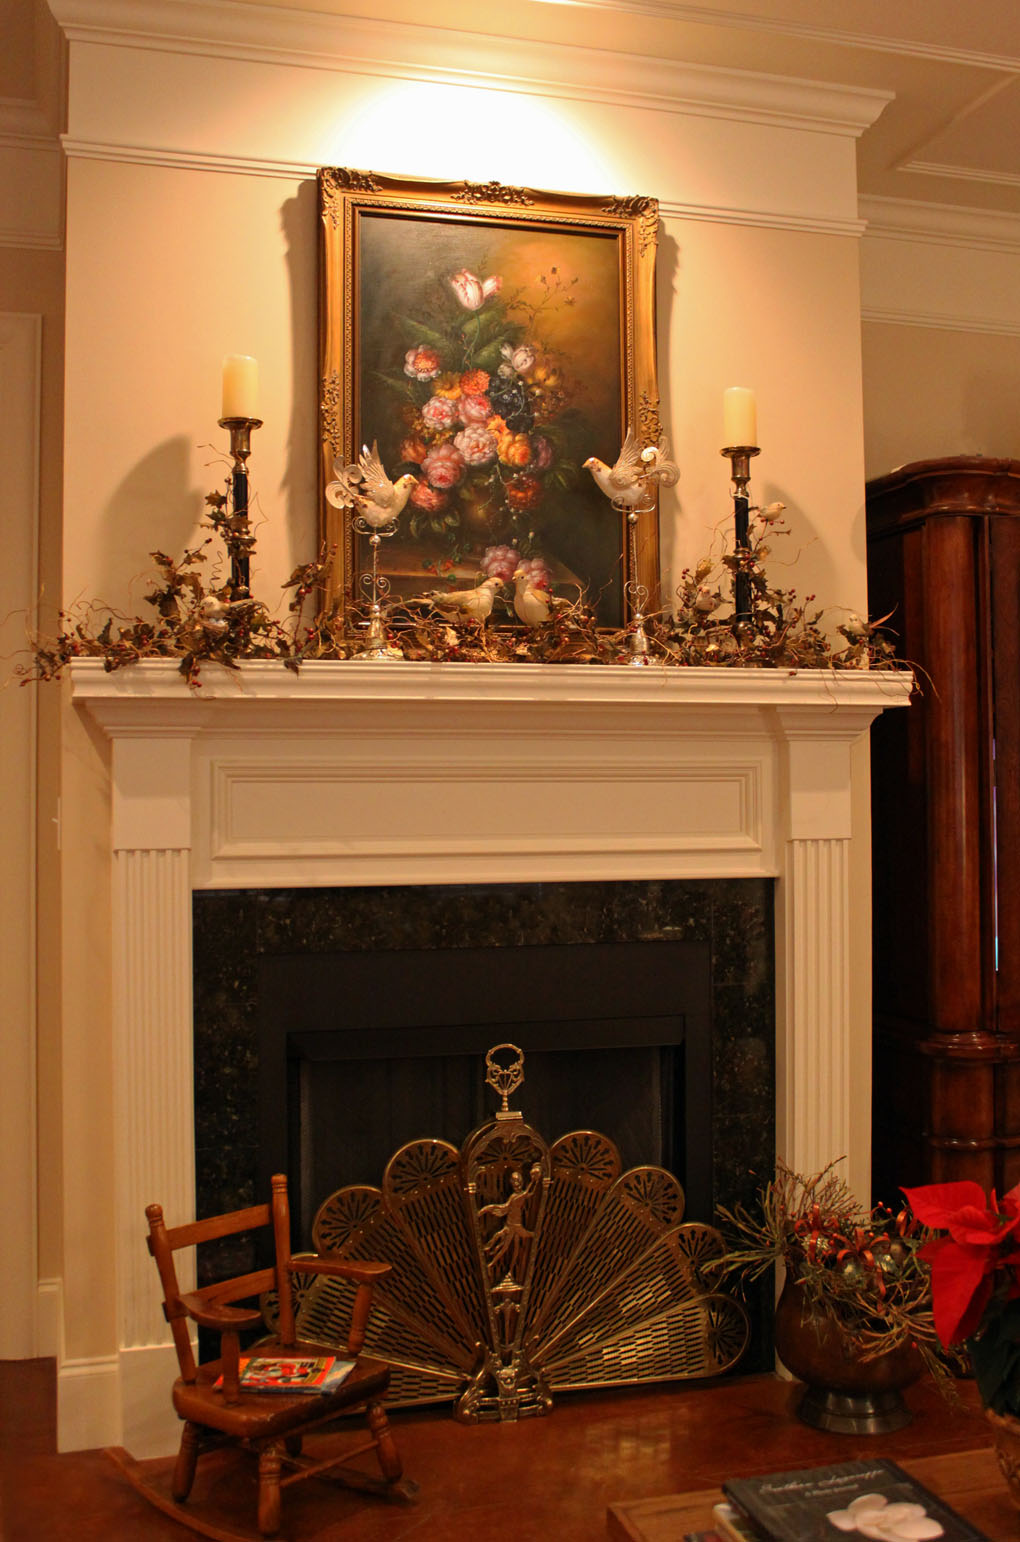 ve always loved decorating our mantel for the seasons especially